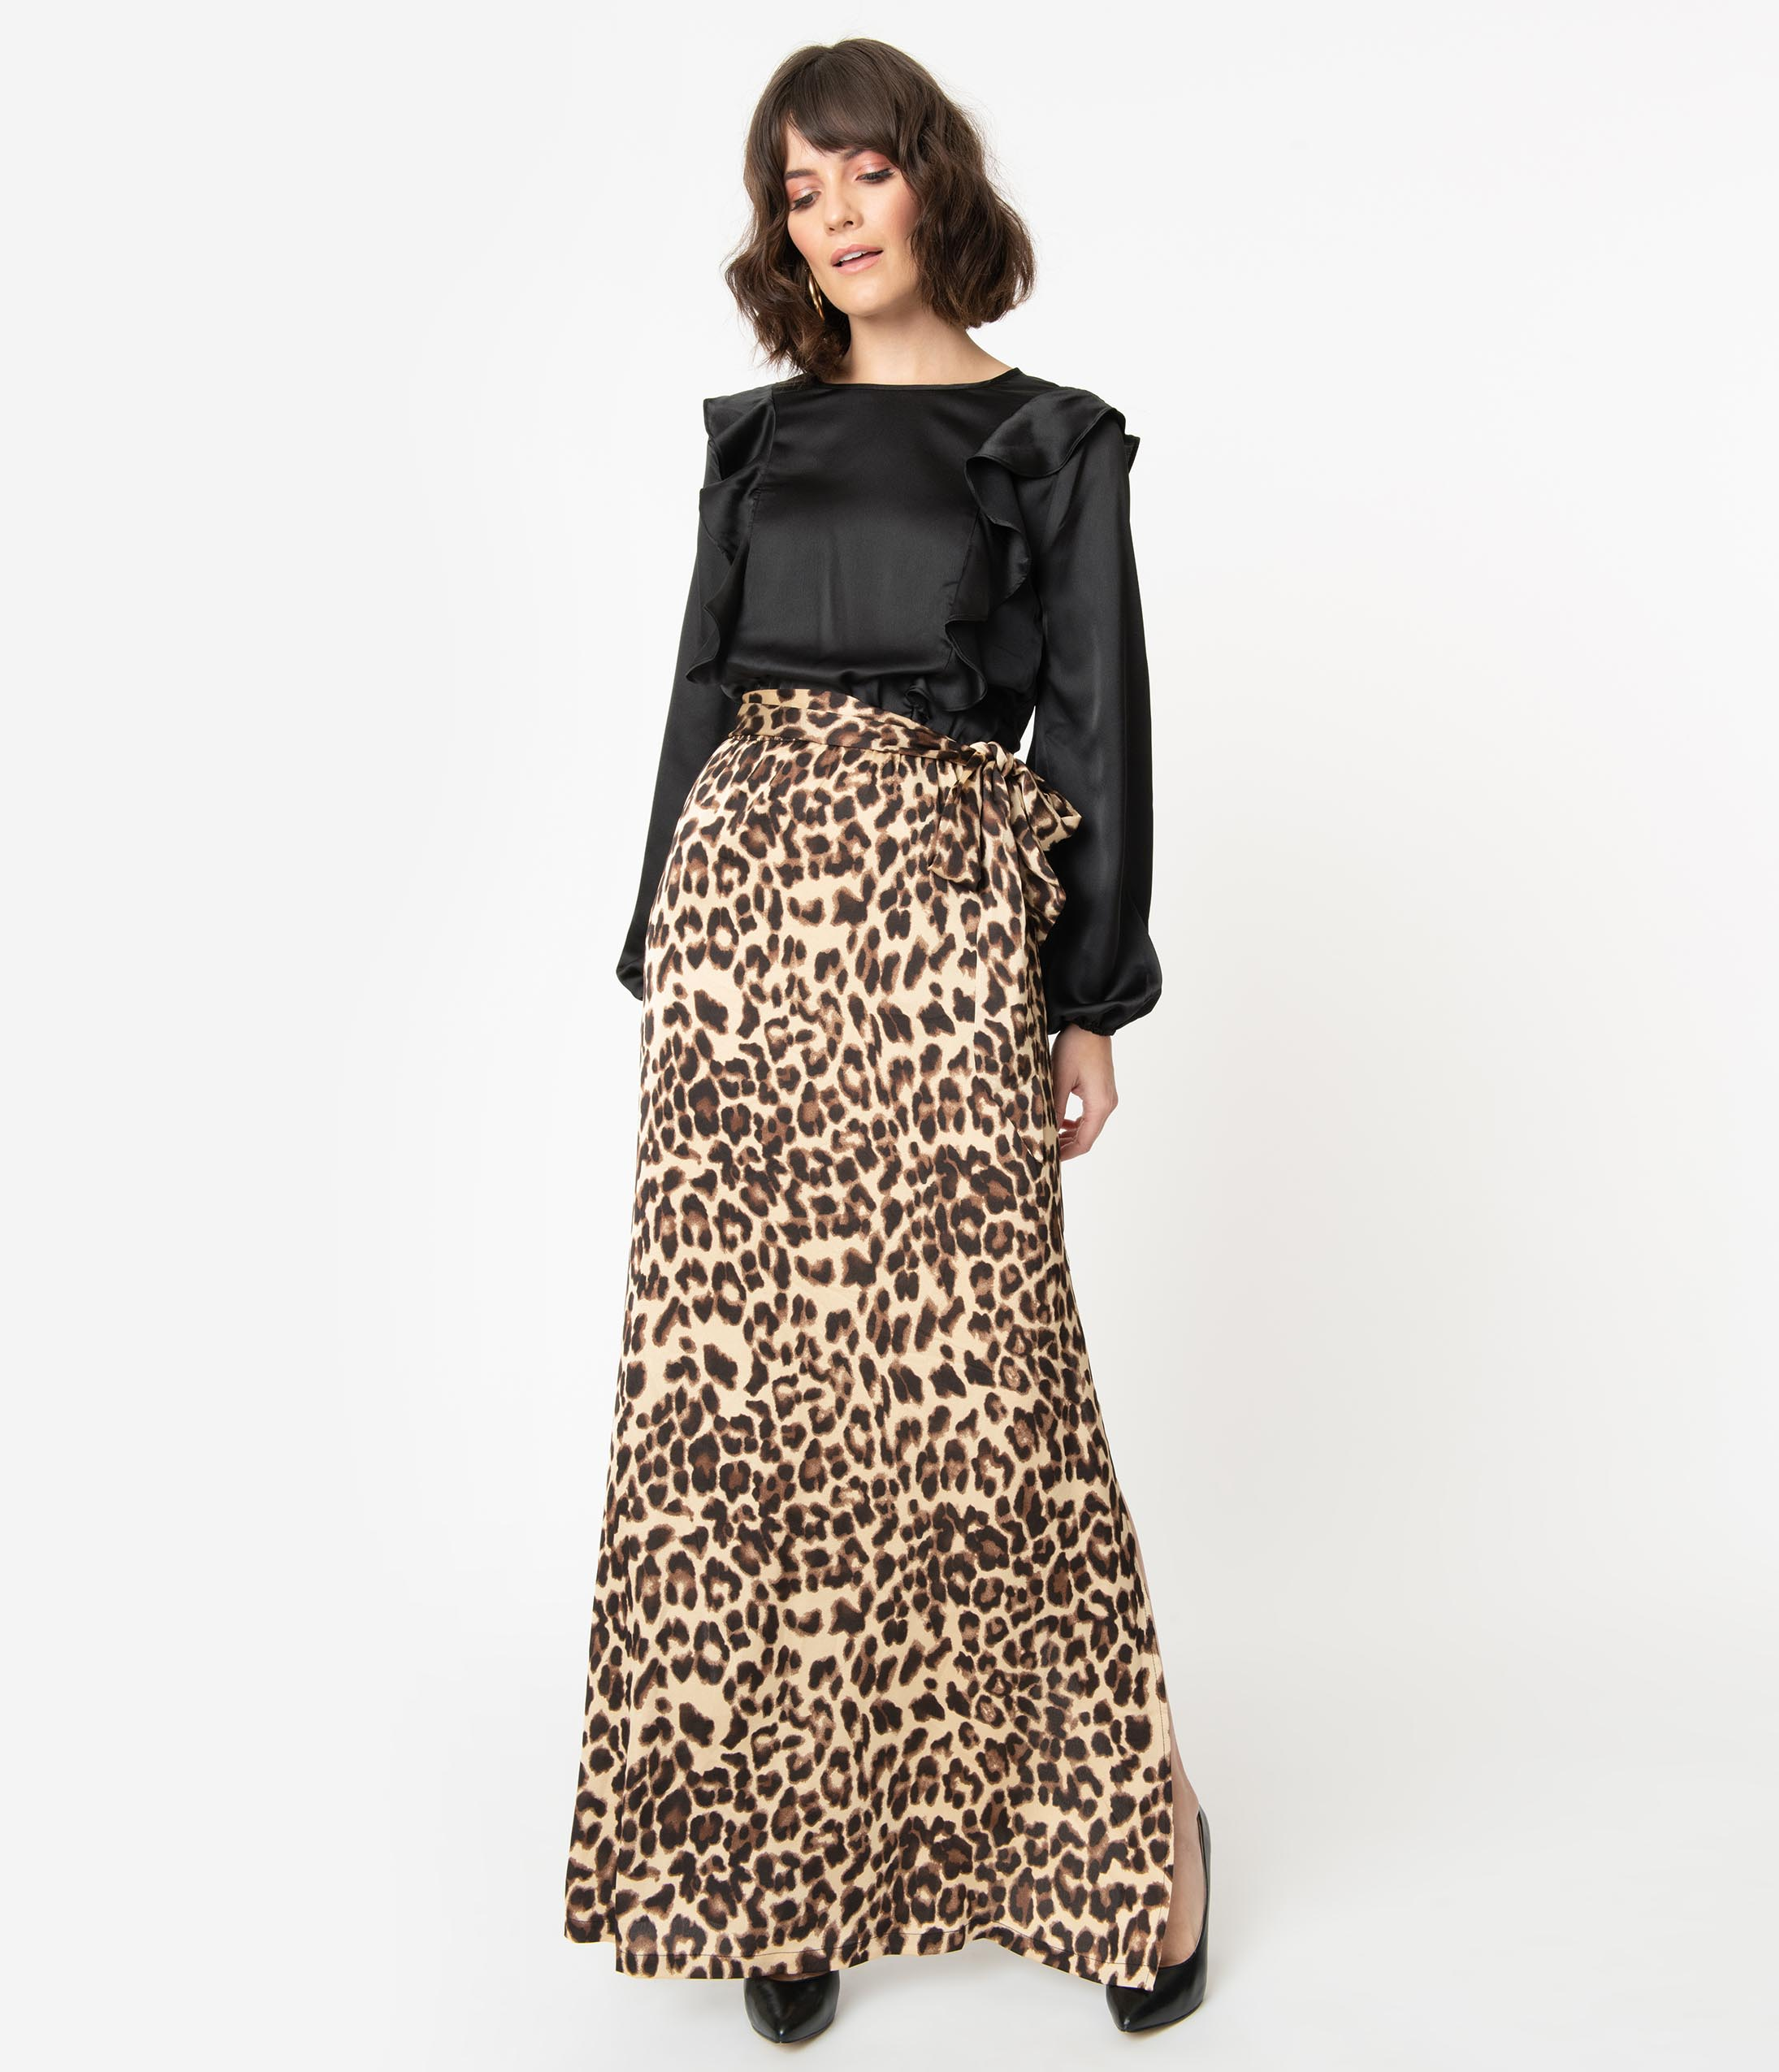 70s Outfits – 70s Style Ideas for Women 1970S Style Black  Leopard Ruffle Maxi Dress $68.00 AT vintagedancer.com